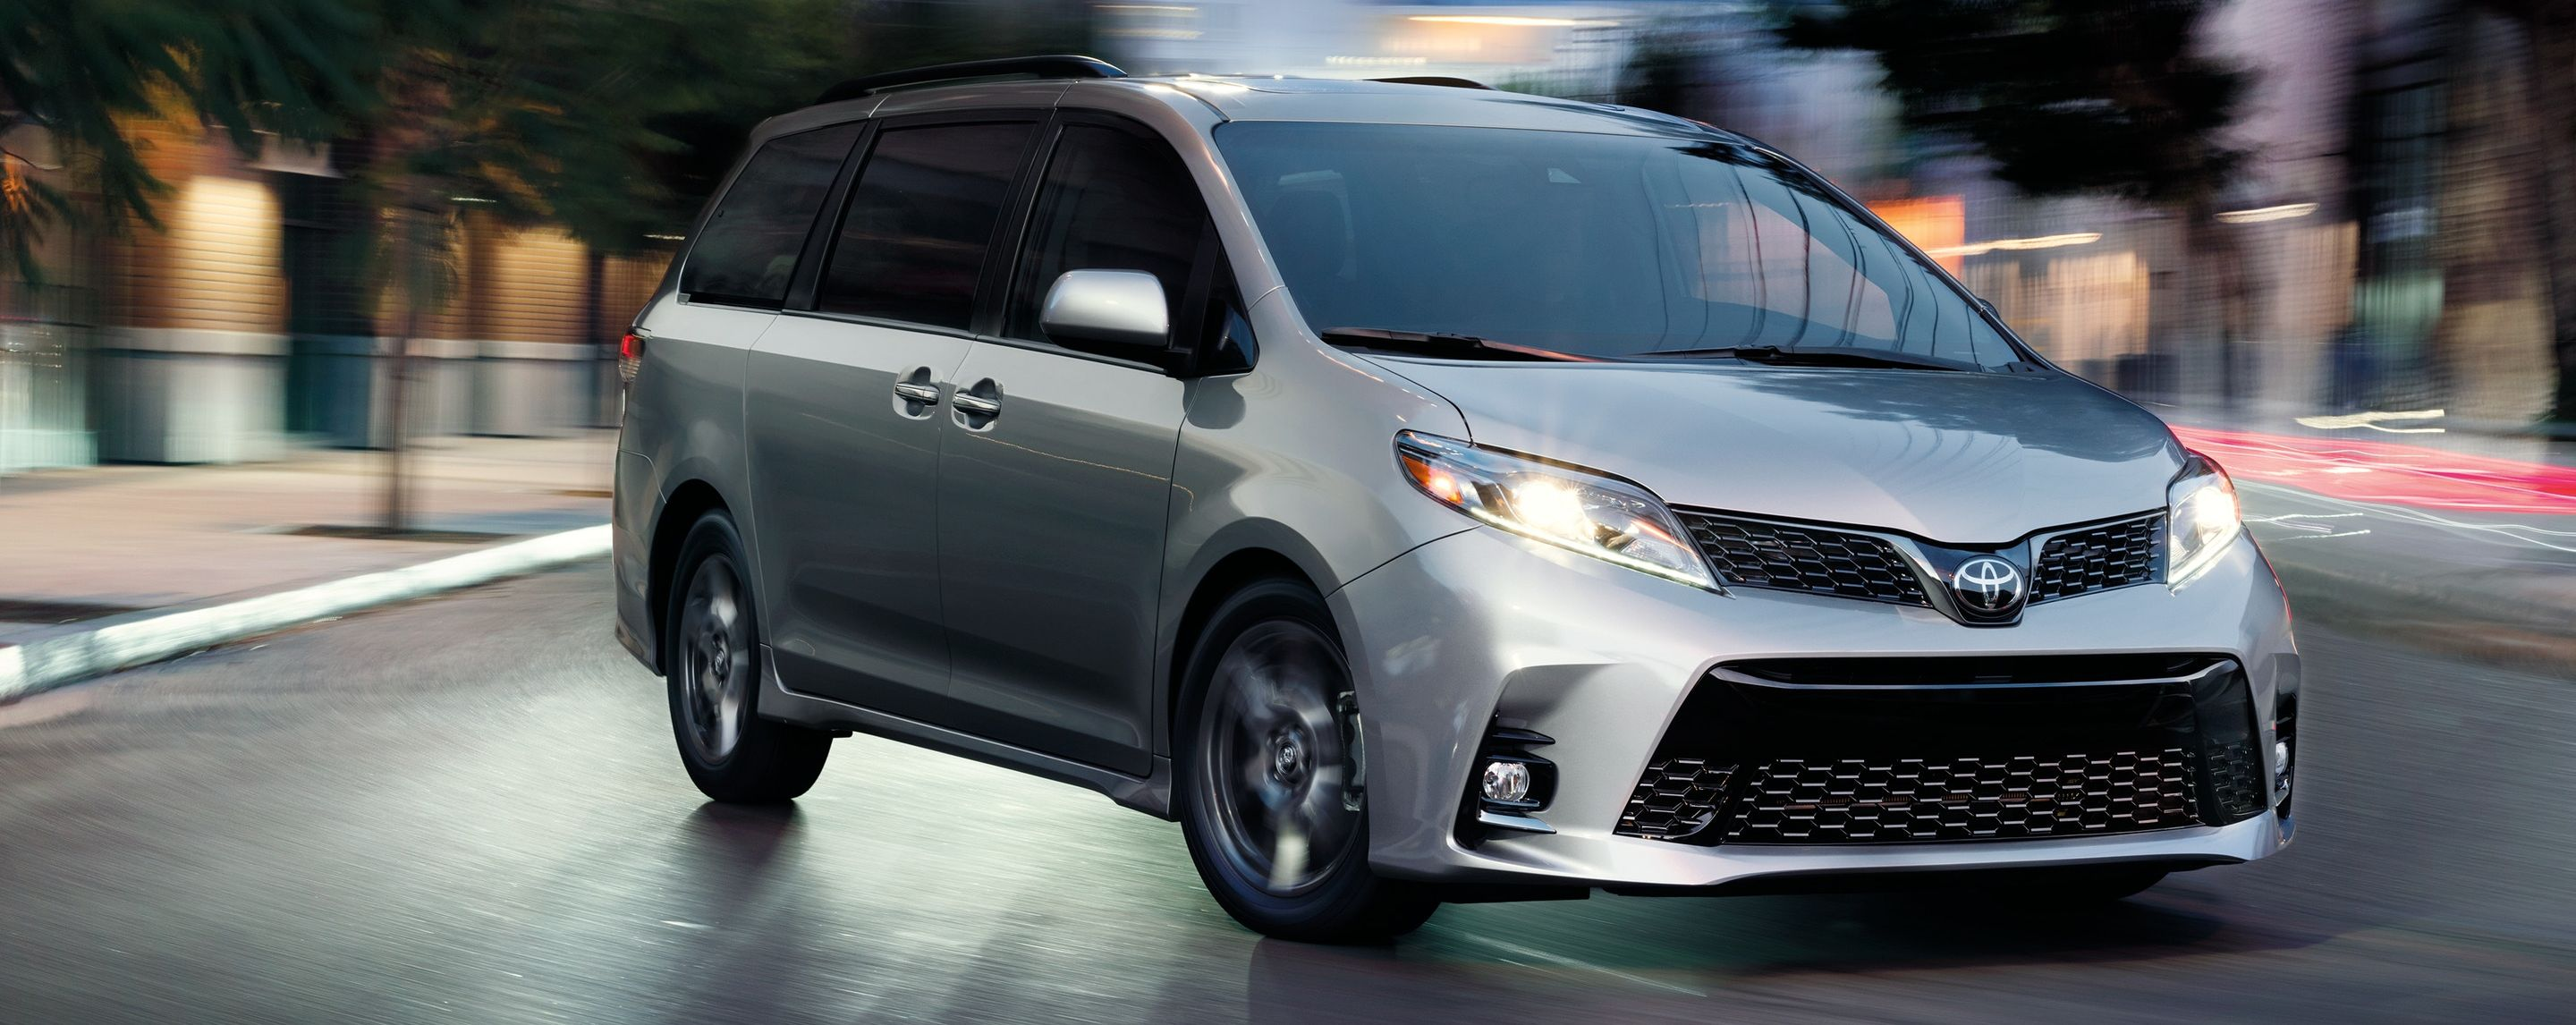 2019 Toyota Sienna for Sale near Stamford, CT